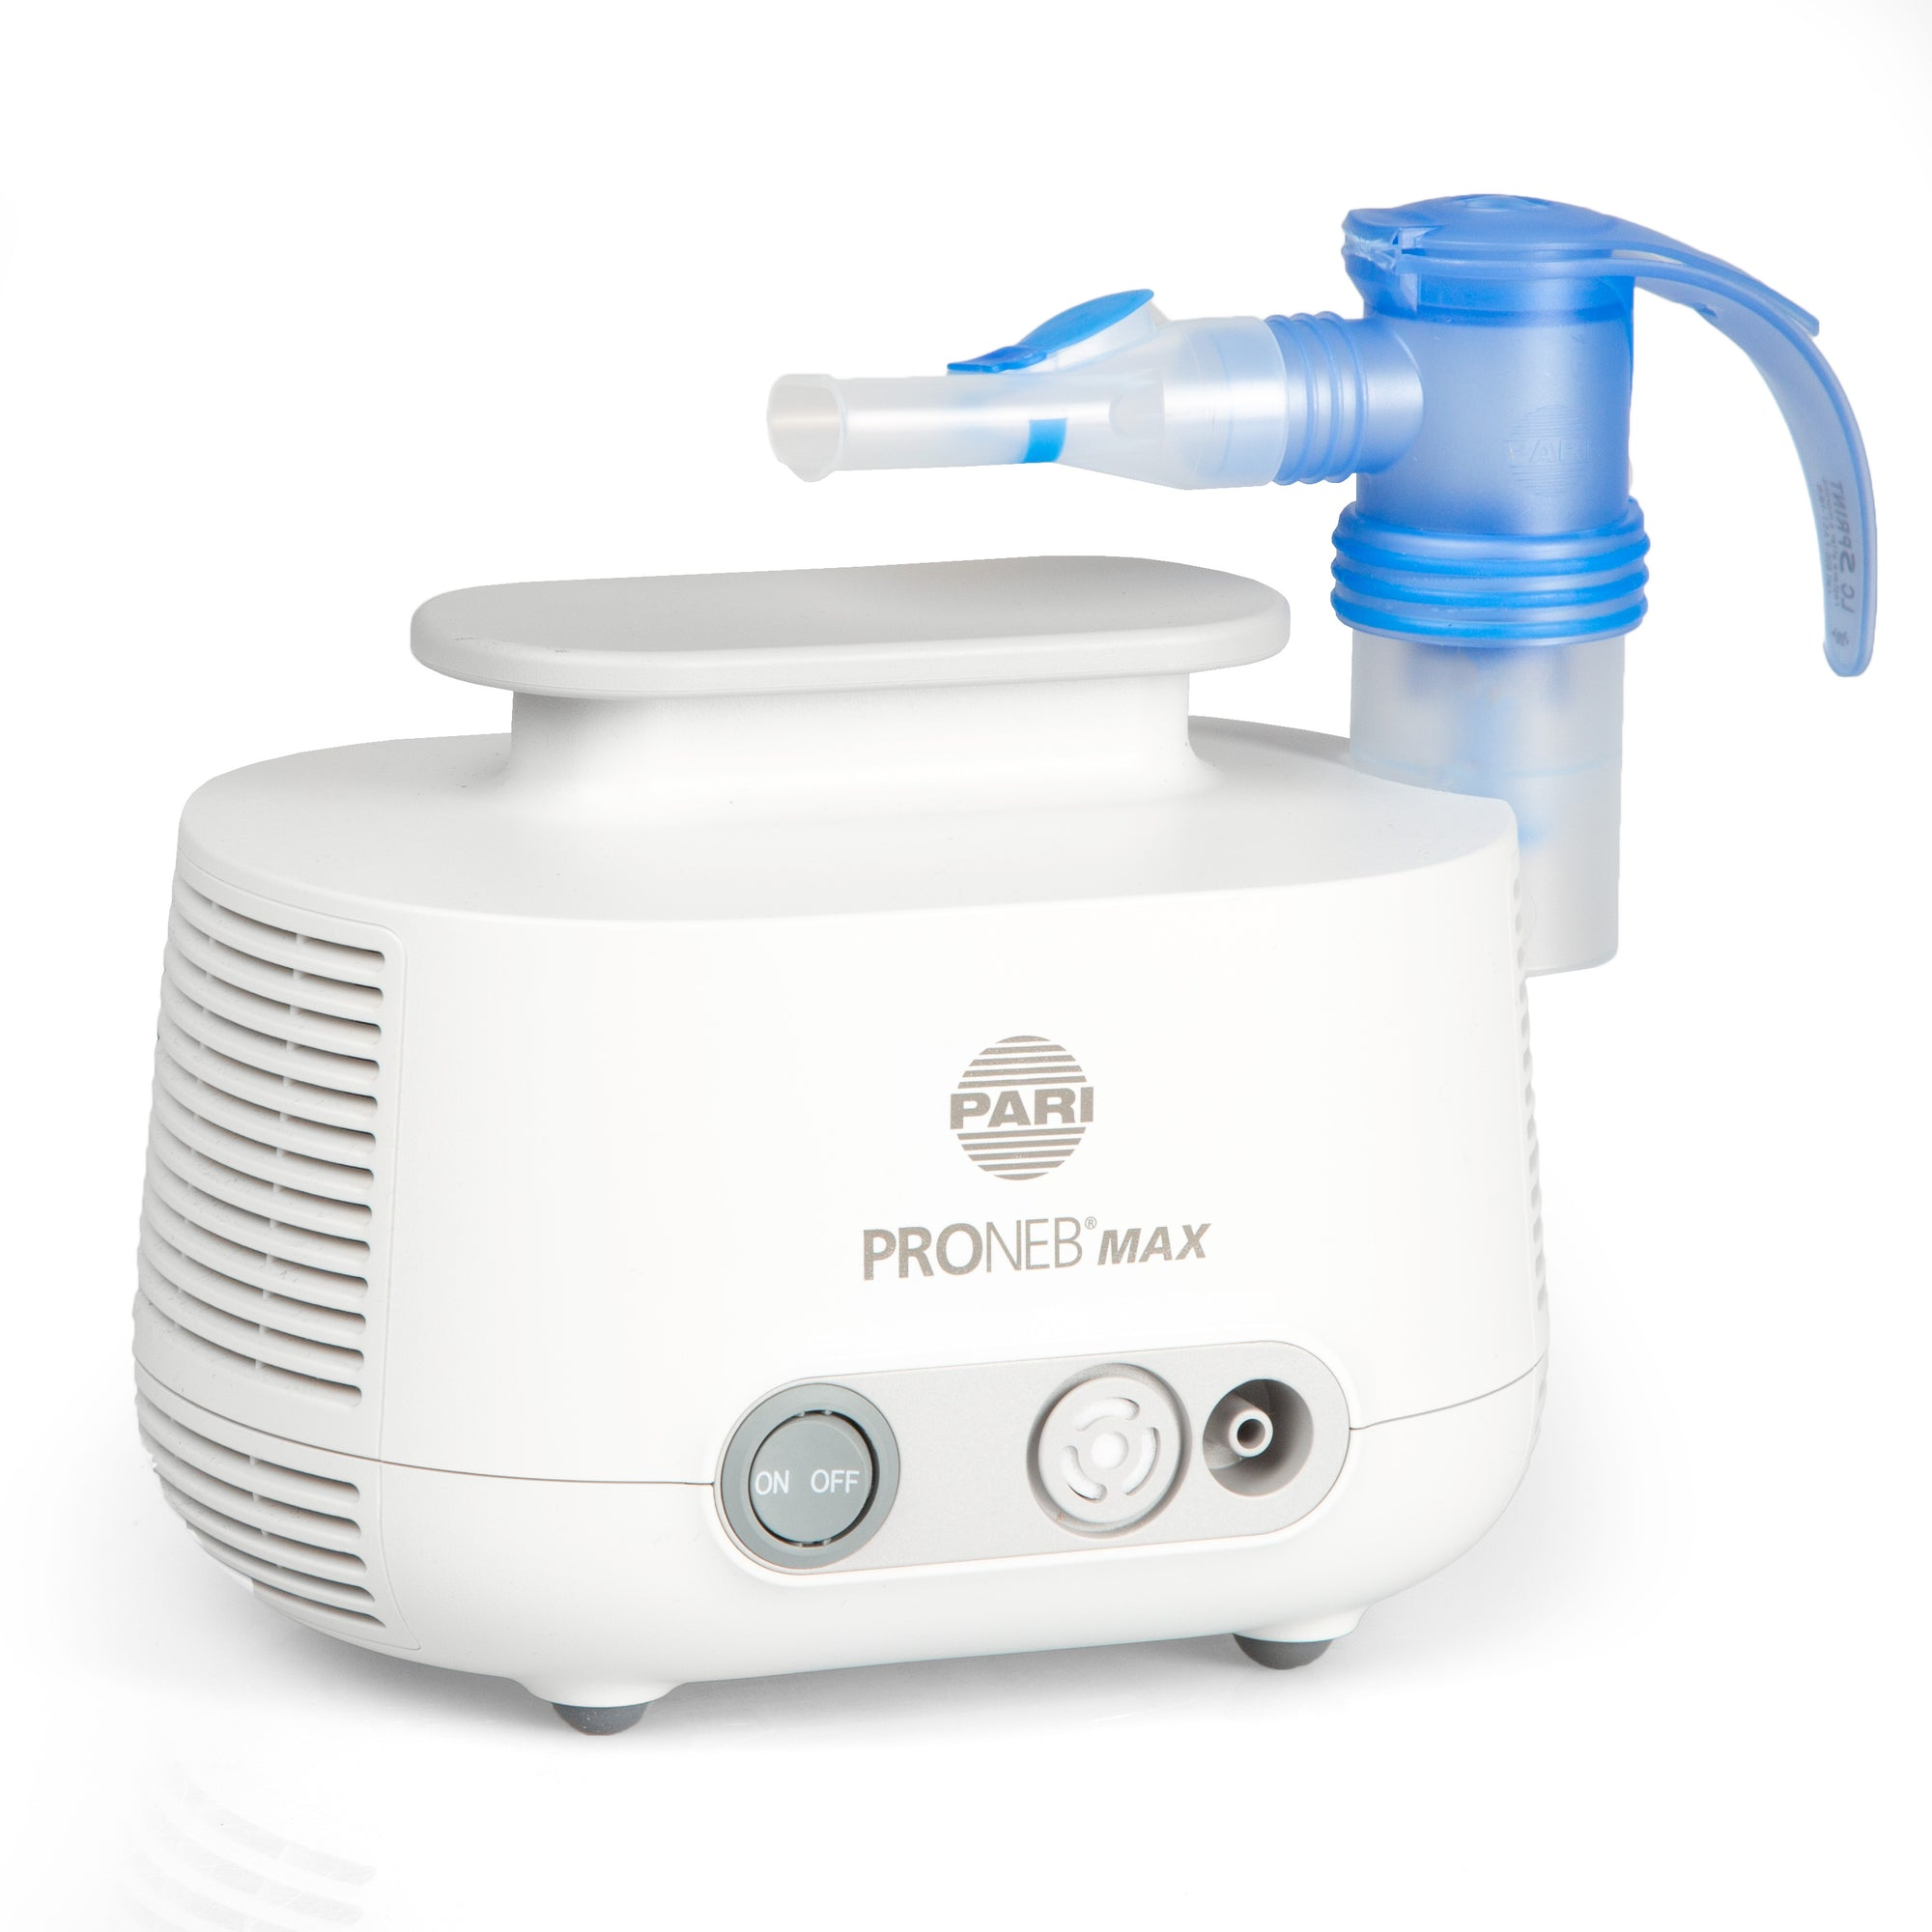 PARI PRONEB Max Aerosol Delivery System with LC Sprint